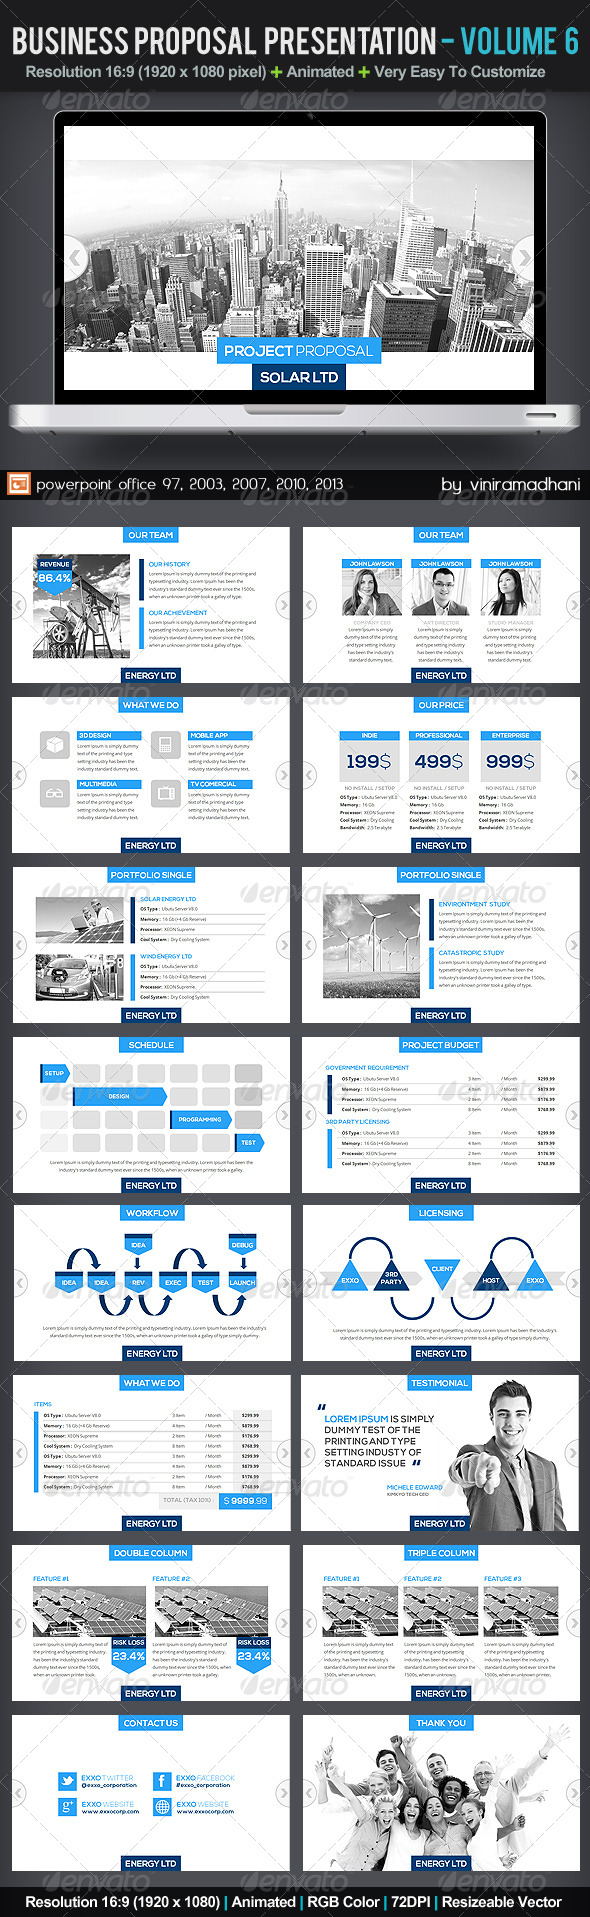 Magnificent 1 Button Template Tall 10 Tips For Writing A Resume Regular 100 Free Resume Templates 12 Hour Schedule Template Youthful 15 Year Old Resume Sample Brown17 Worst Things To Say On Your Resume Business Insider Business Proposal Presentation | Volume 6 | Fonts, Colors And Template